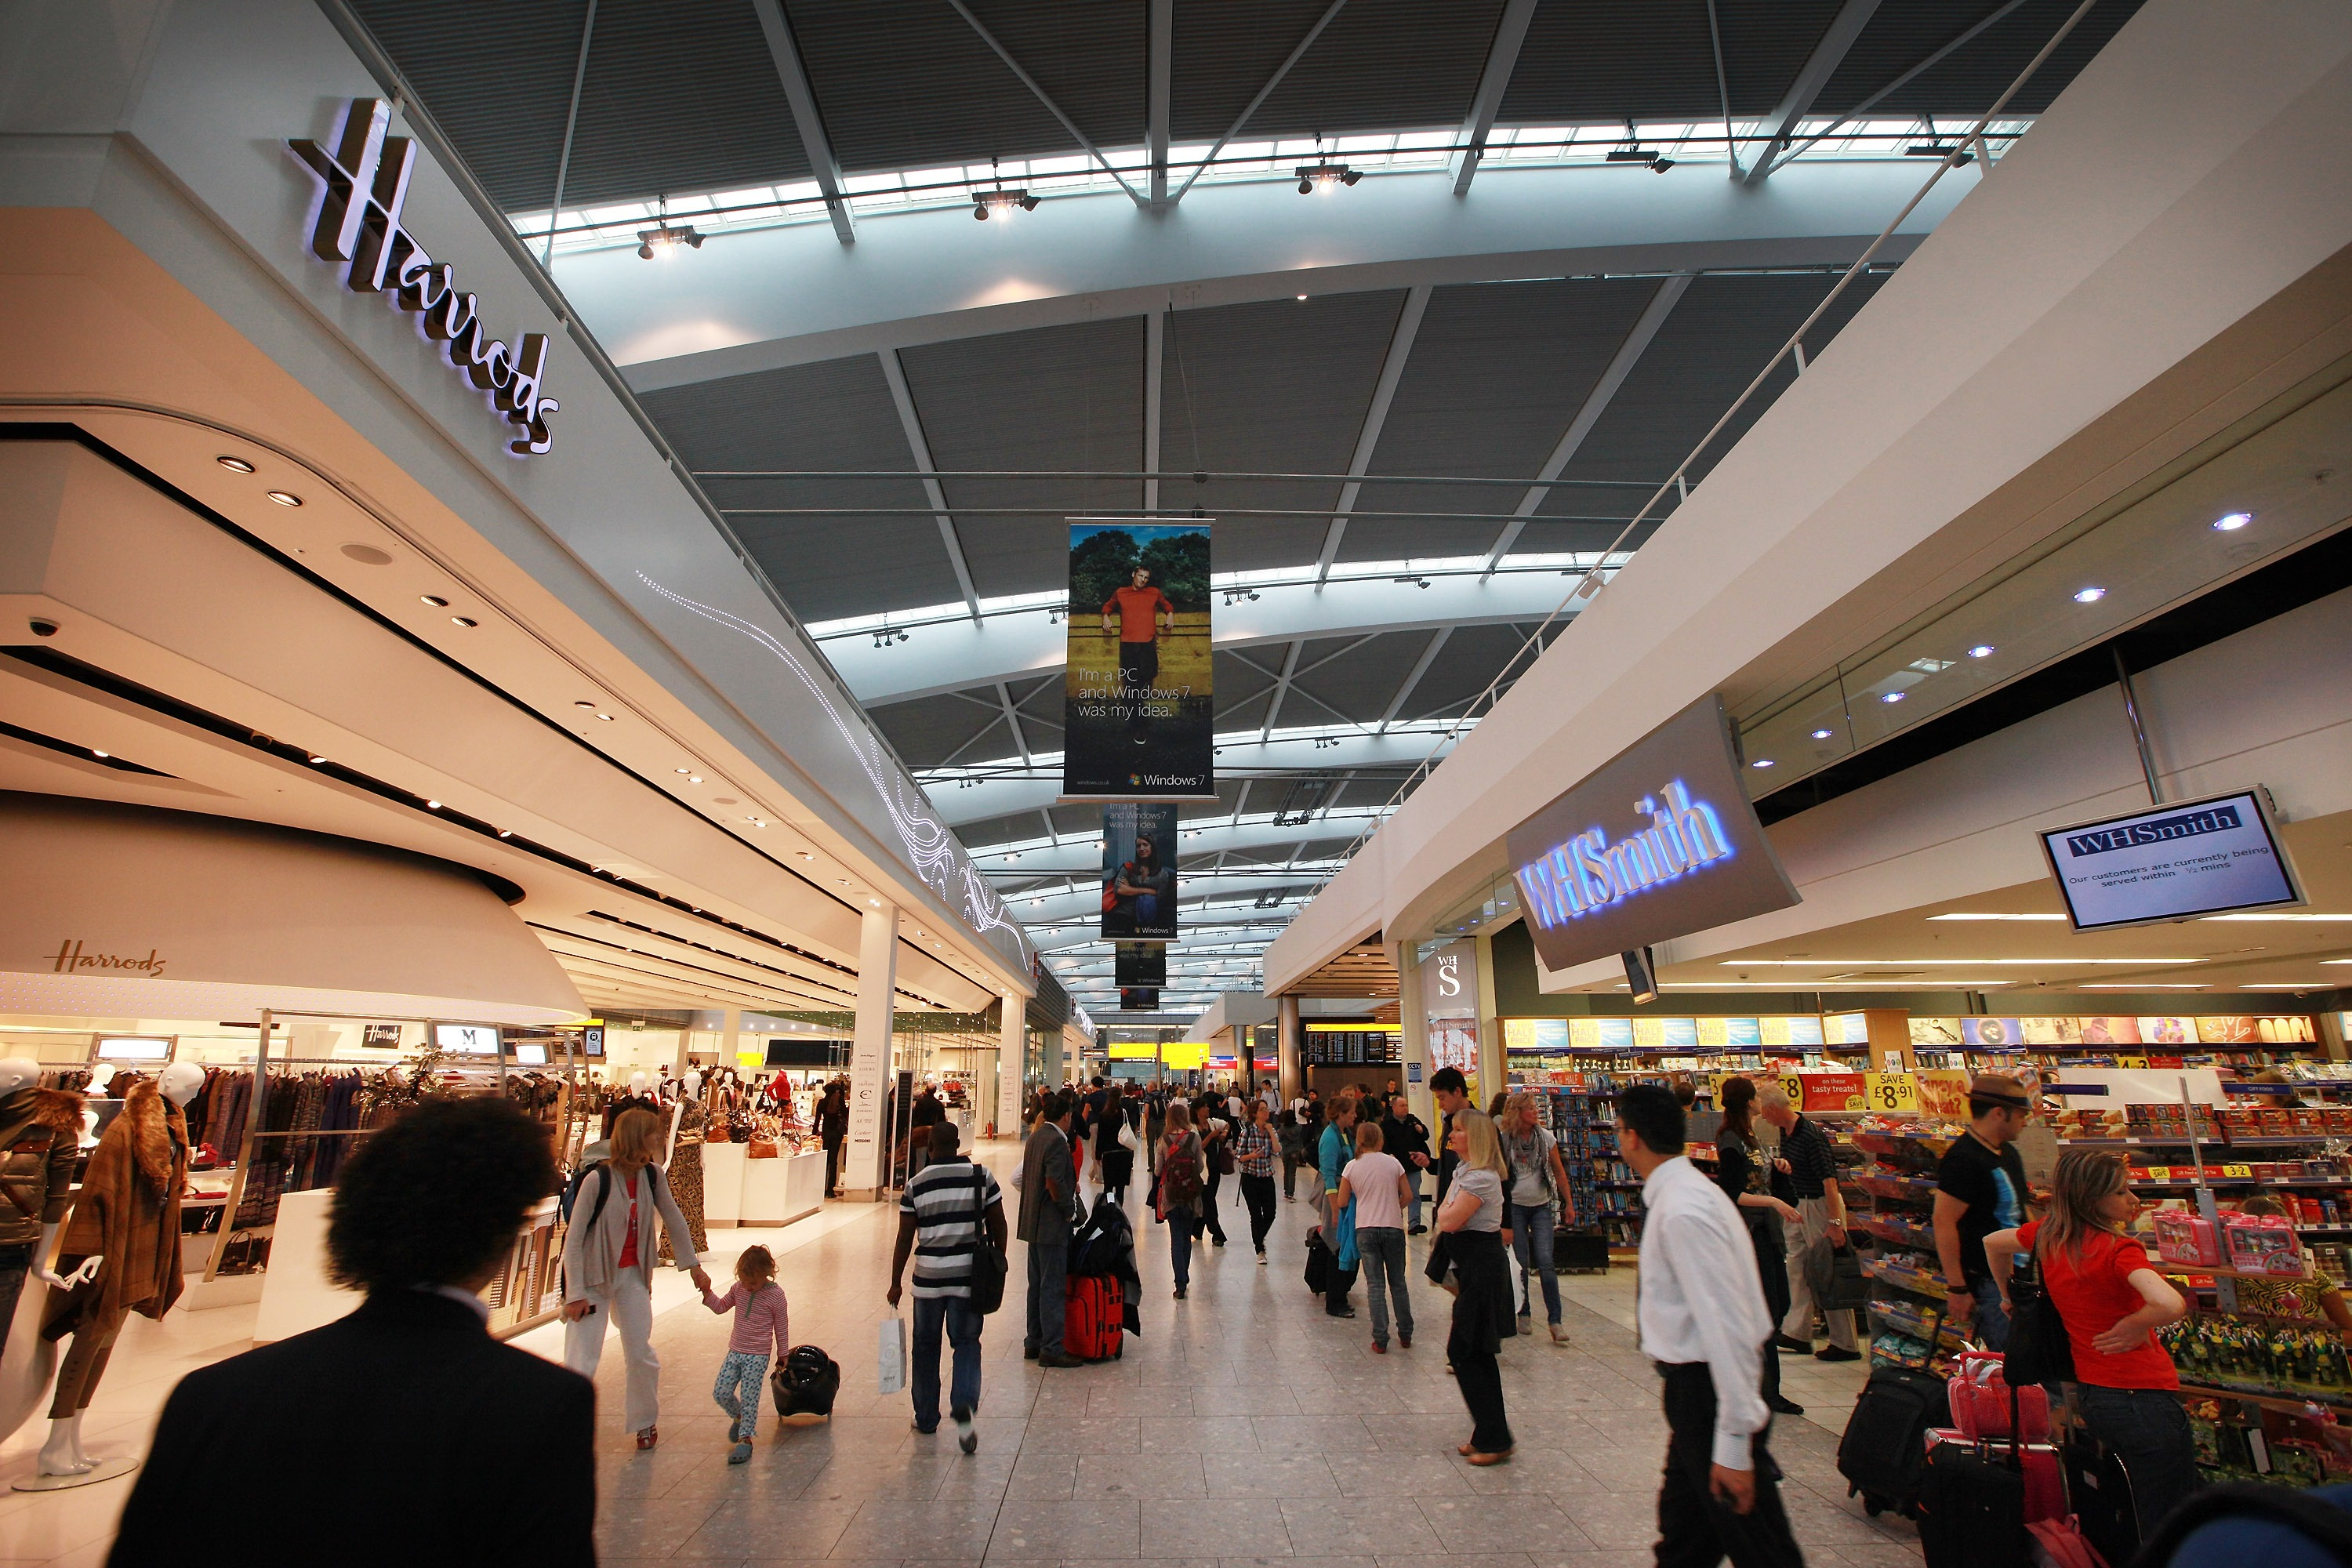 Passengers walk  through the shopping area at terminal five at Heathrow airport on August 27, 2010 in London, England.